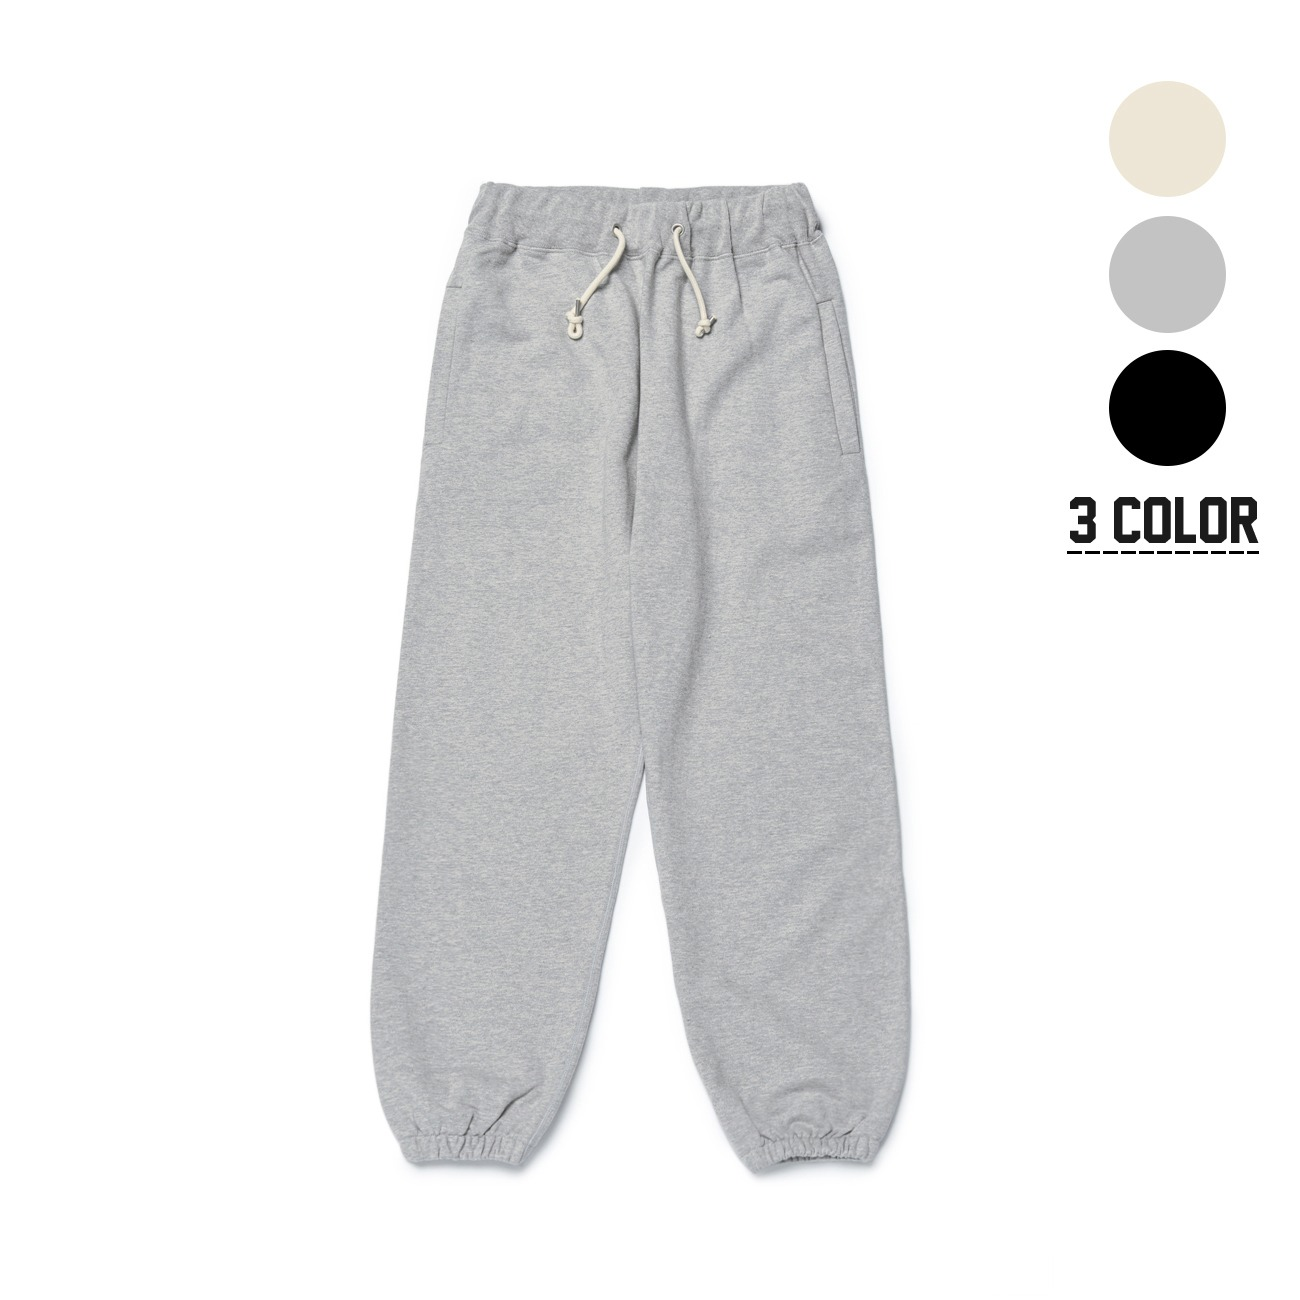 20FW 89 Sweat Pants [3 Color]